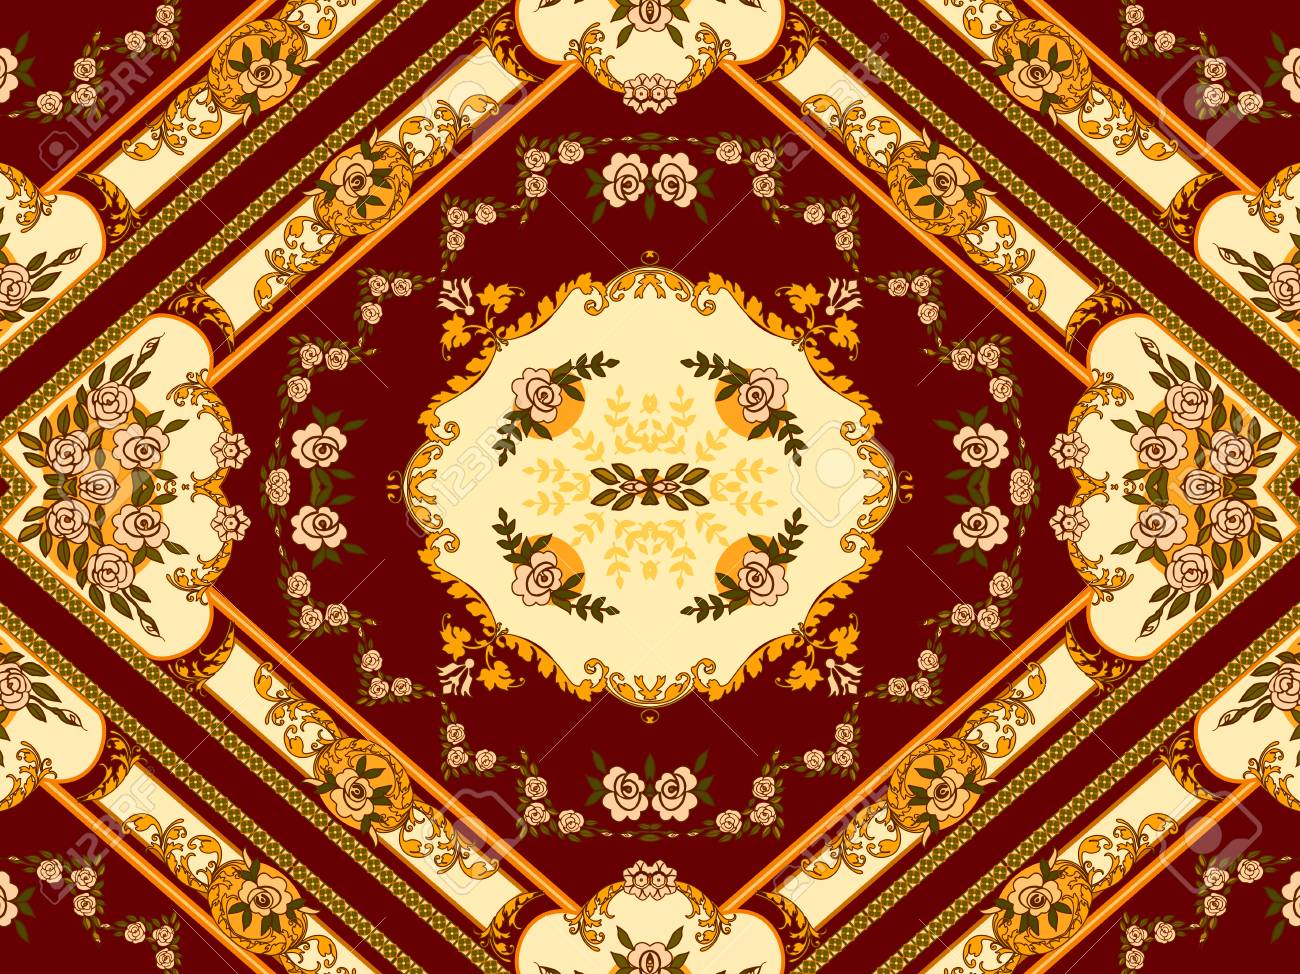 Illustration Of A Bright Multicolored Carpet With Floral Ornaments ...